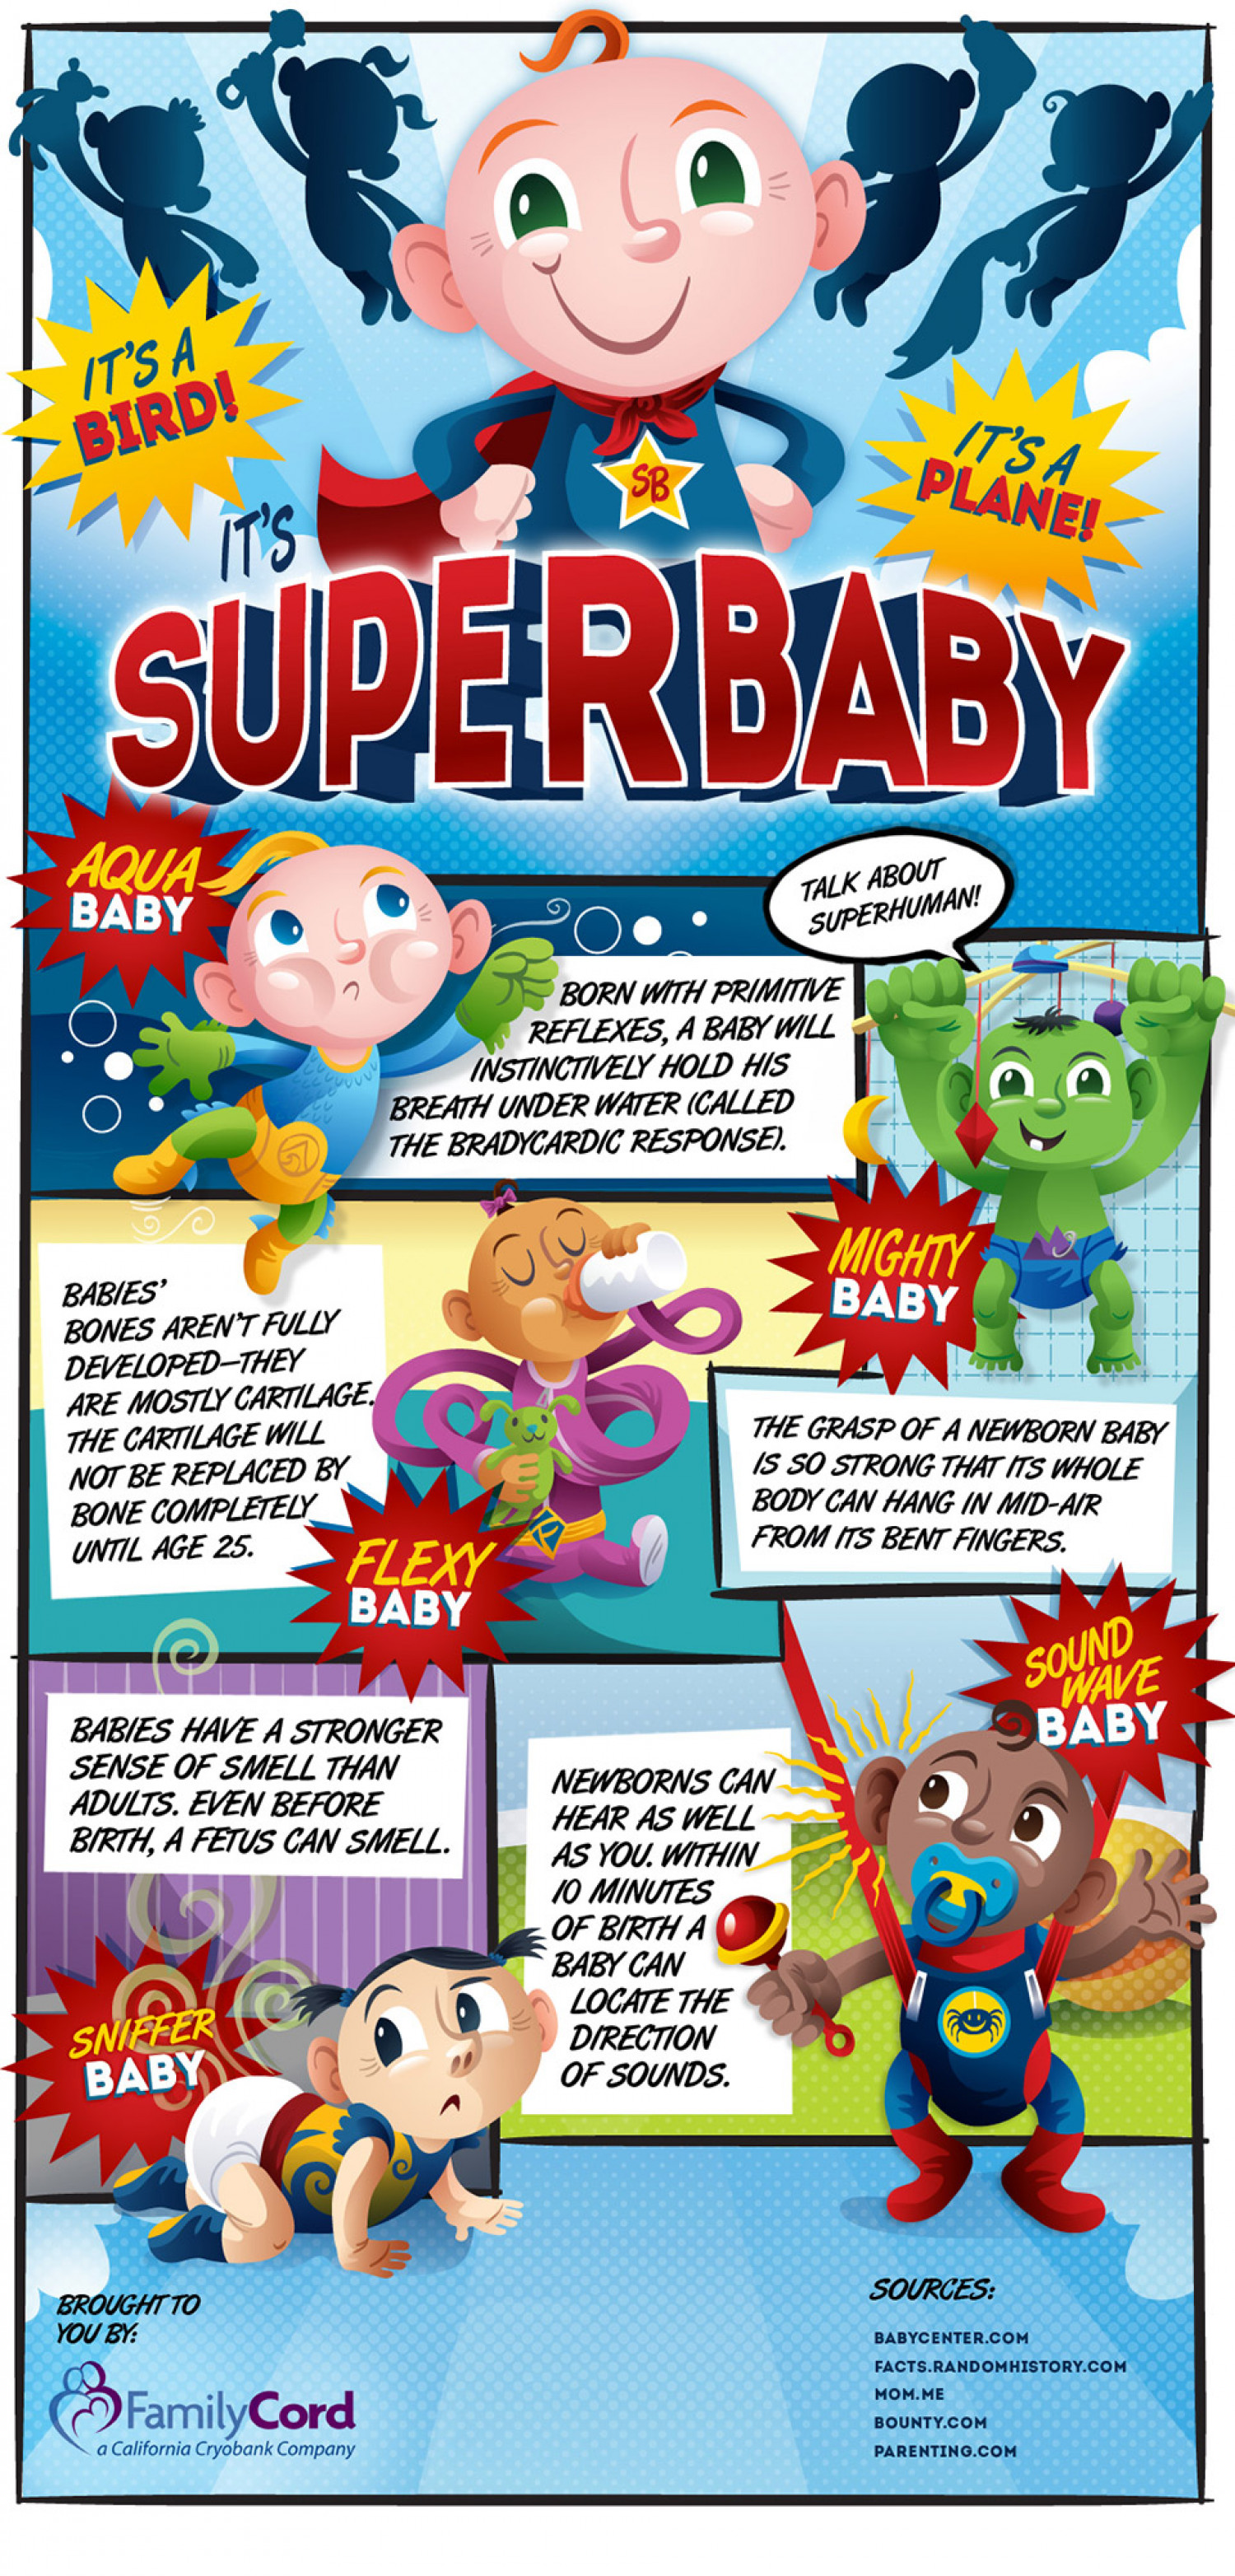 It's A Bird, It's A Plane, It's Superbaby! Infographic